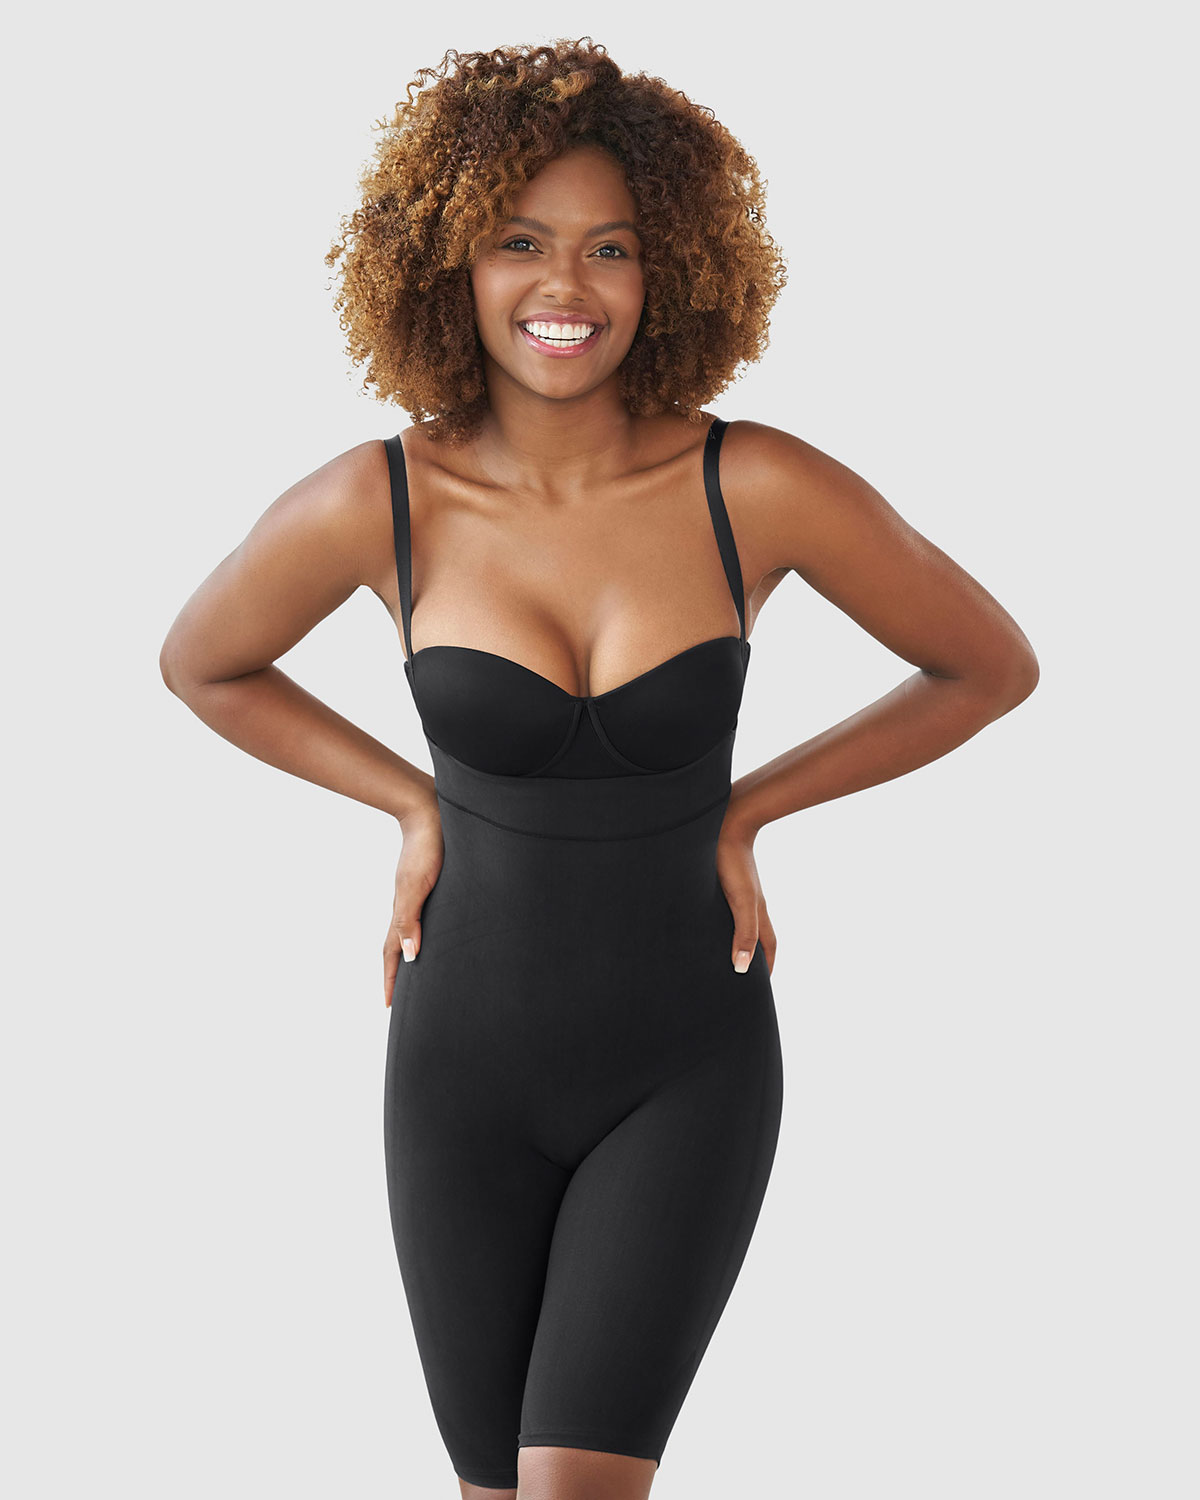 54850bbd83 Leonisa Seamless High Waist Shapewear with Thigh Compression Free ...